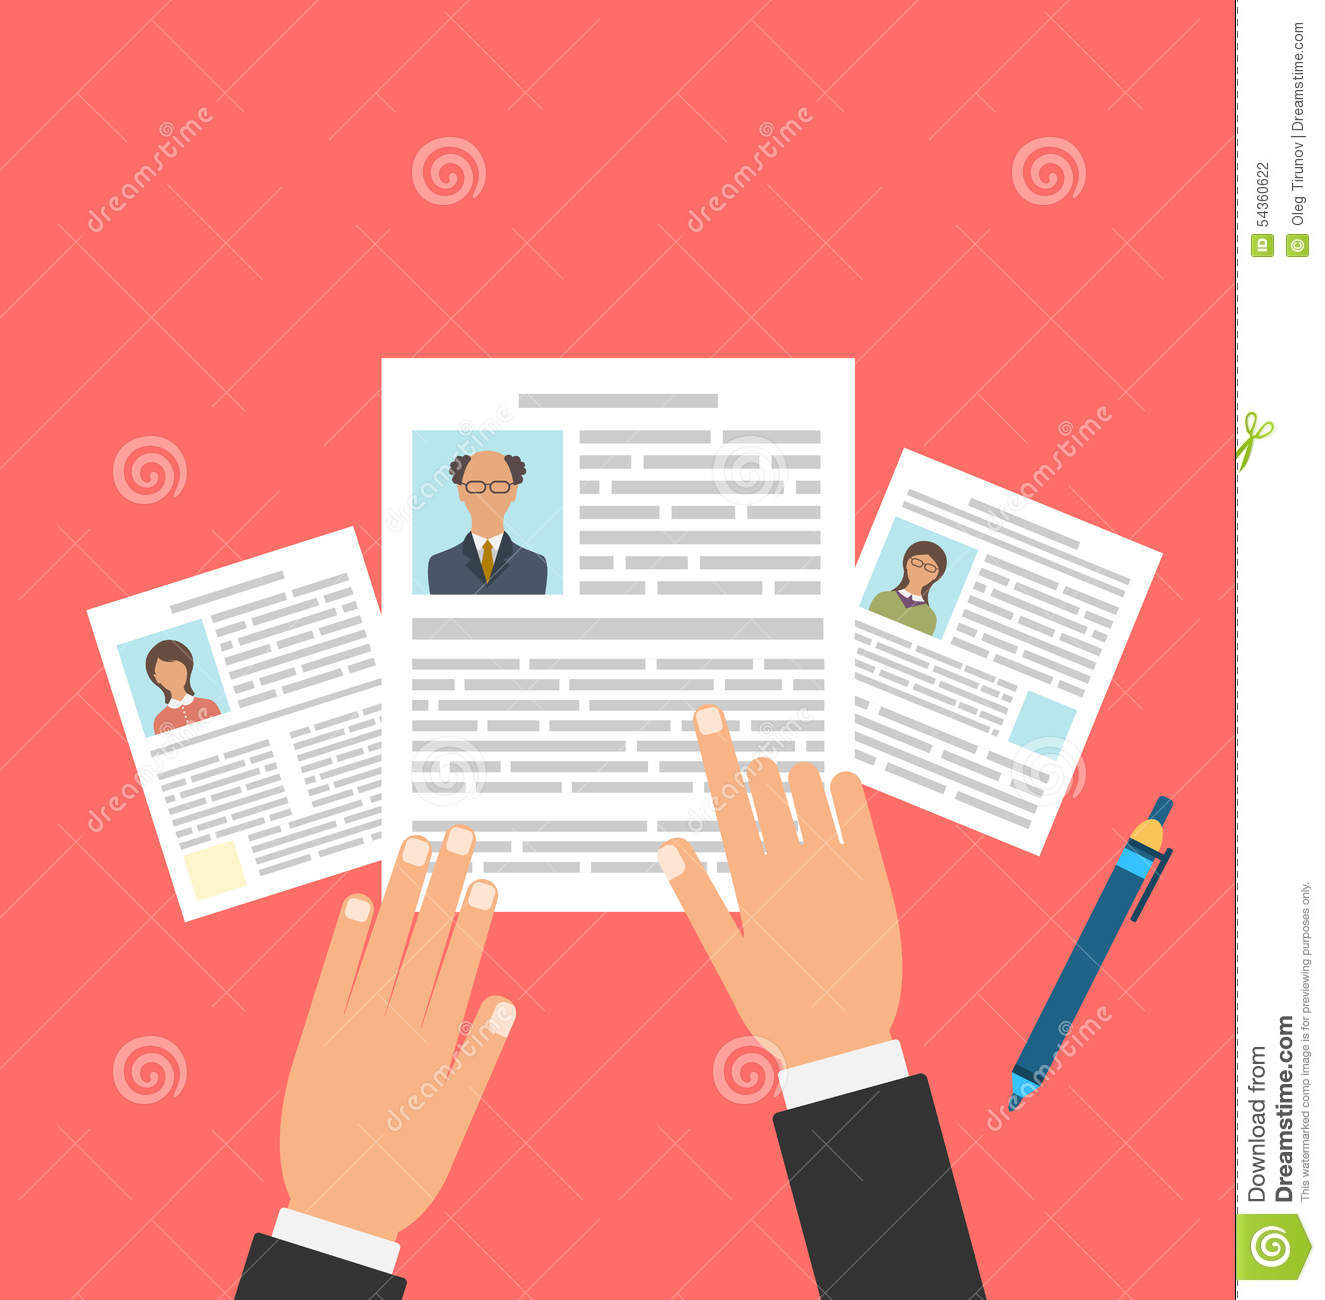 concept of job interview with business cv resume stock vector